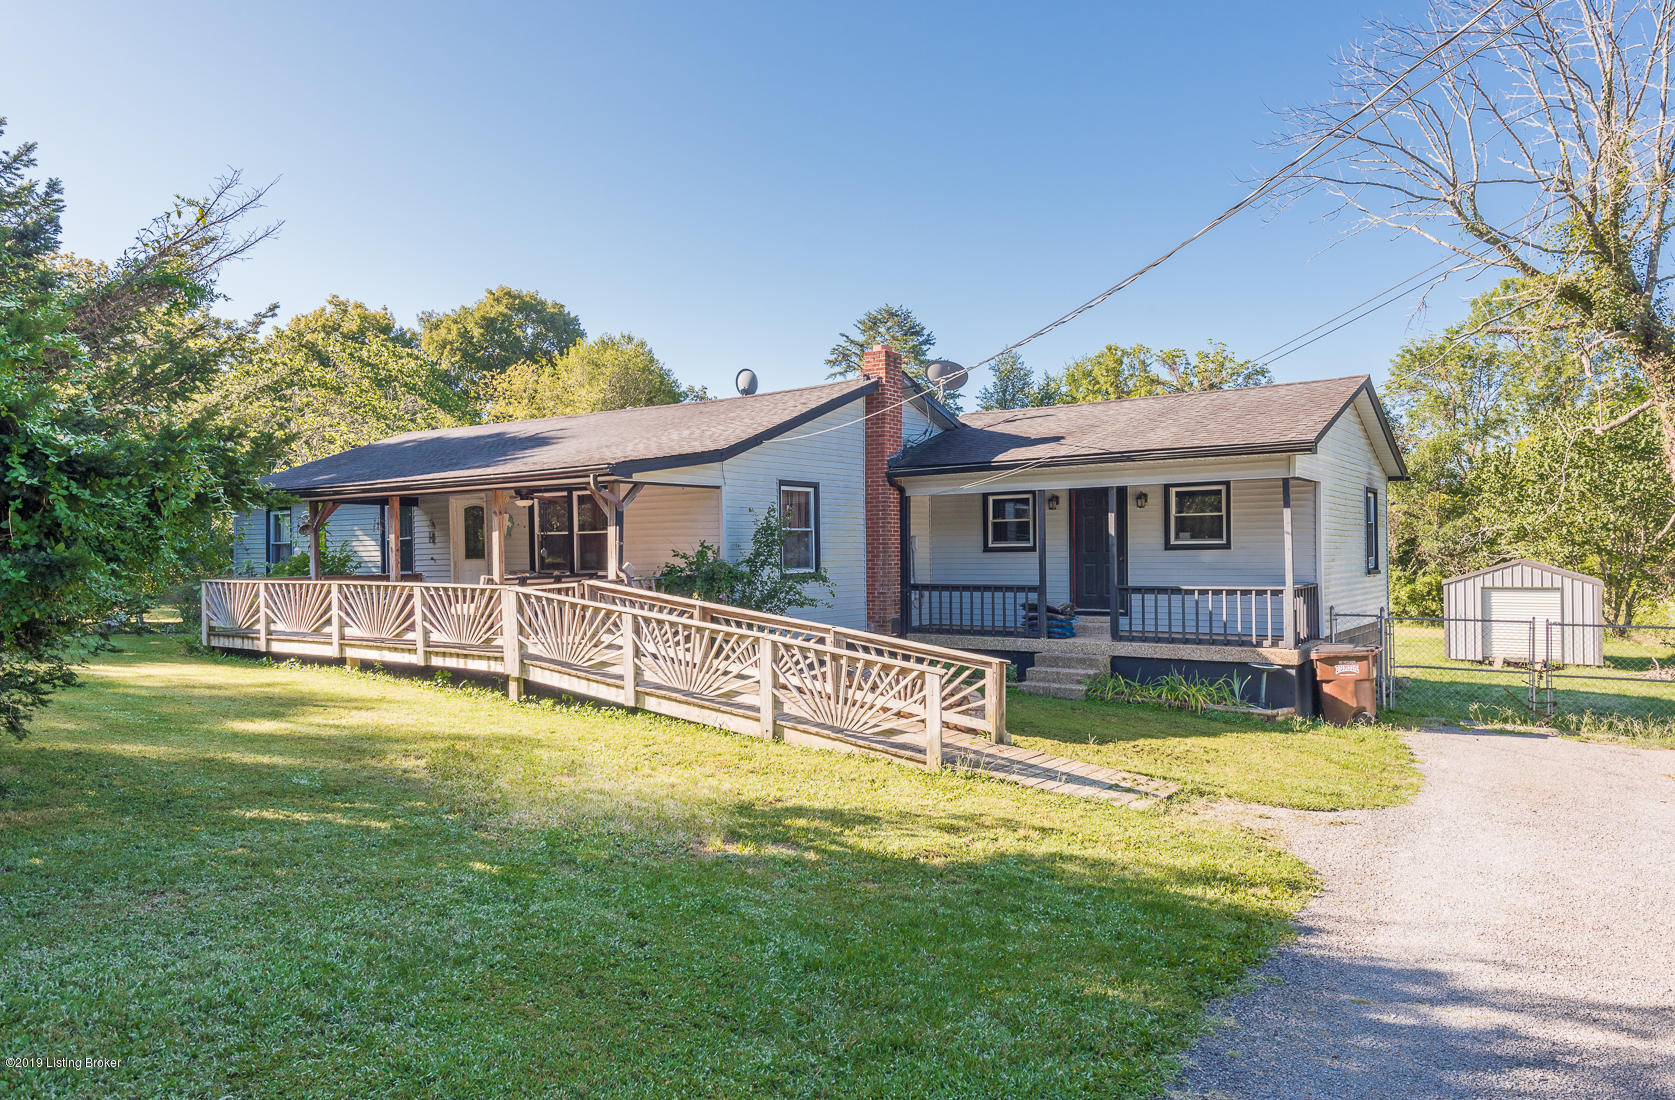 255 E Indian Stone Rd